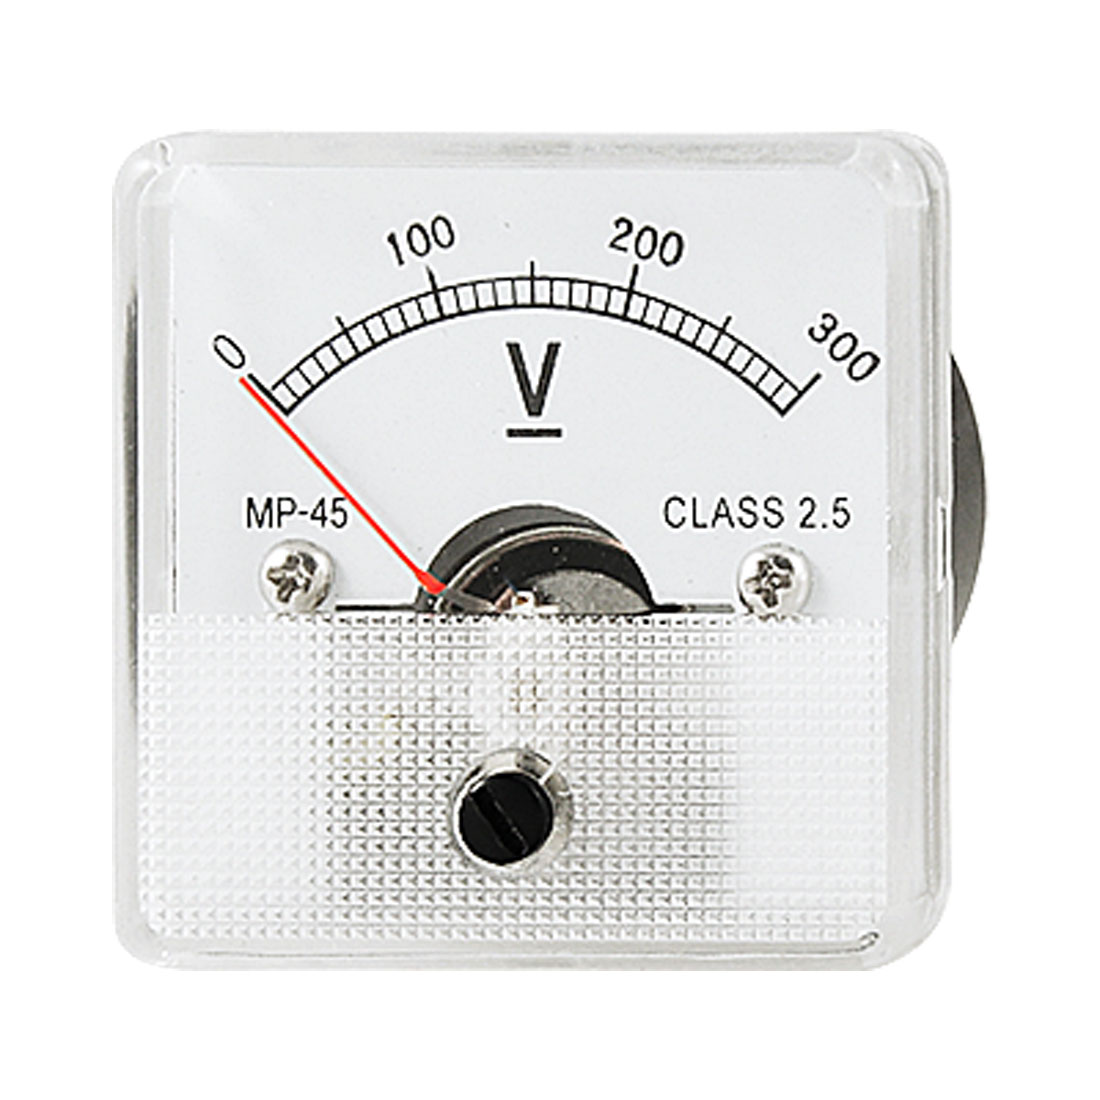 Analog Voltage Panel Meter DC 0-300V Voltmeter MP-45